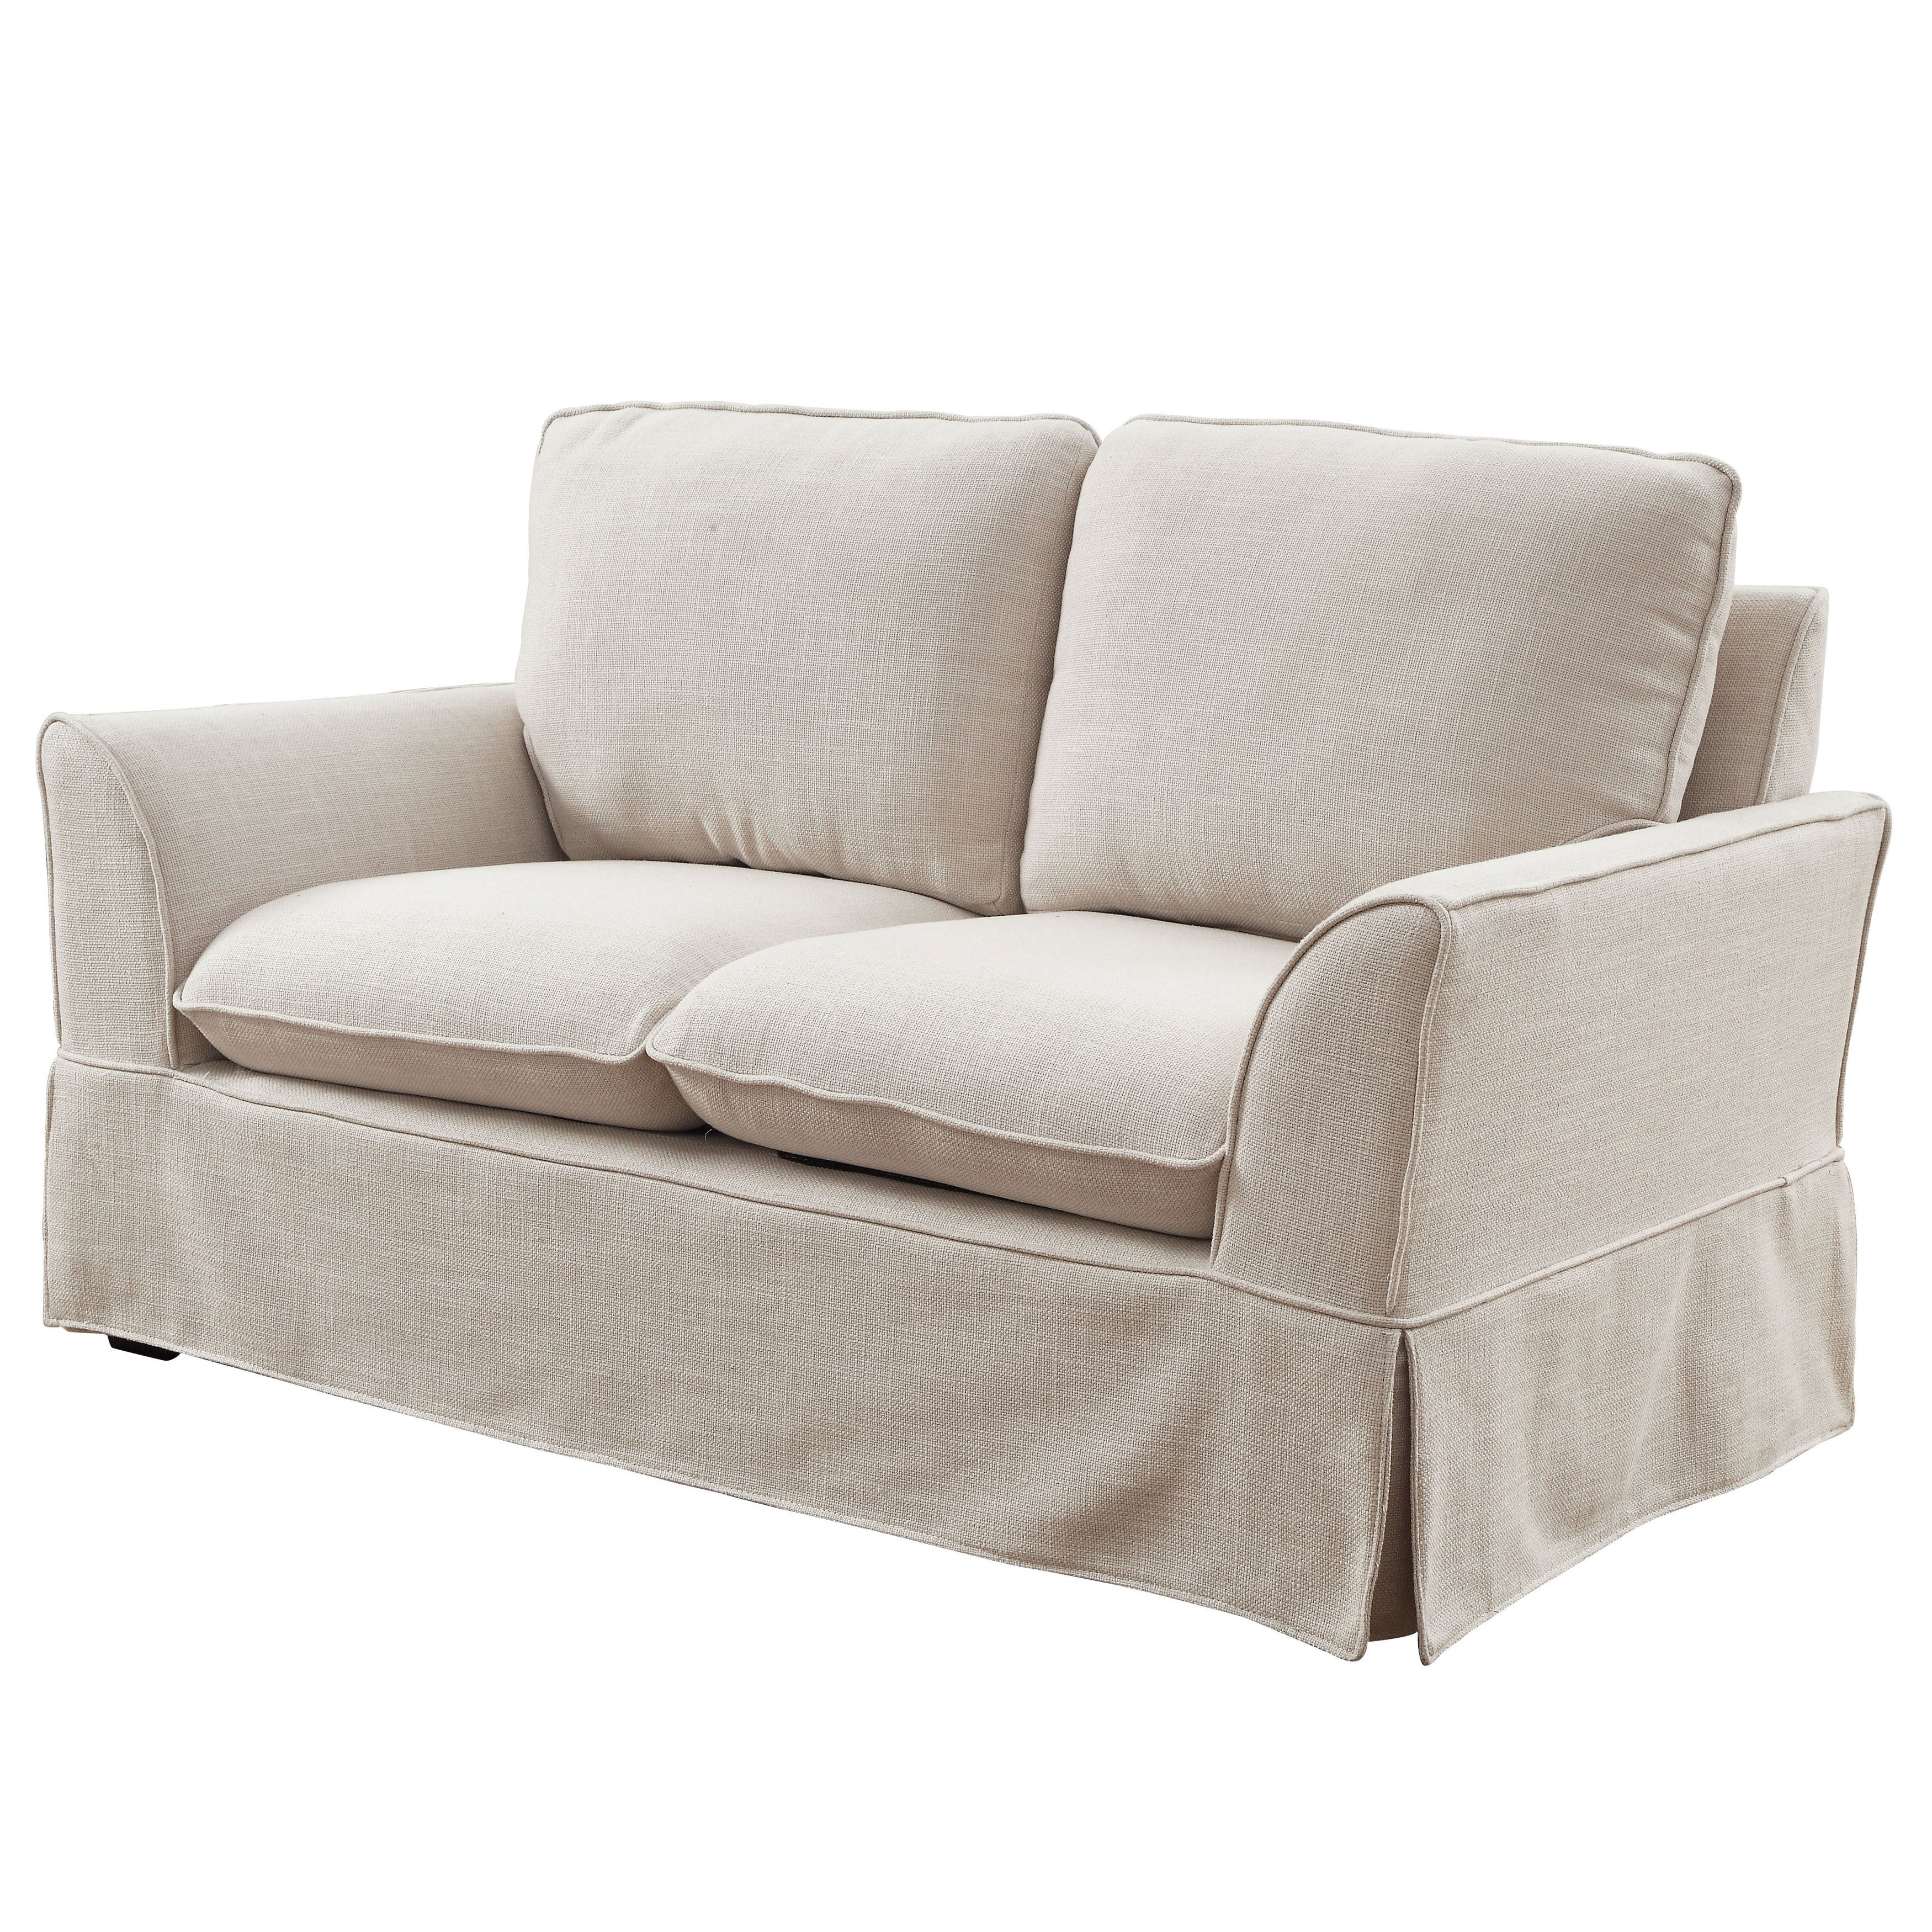 classic upholstery overstock of america fabric loveseat home furniture laurel free skirted garden frame today shipping wood product